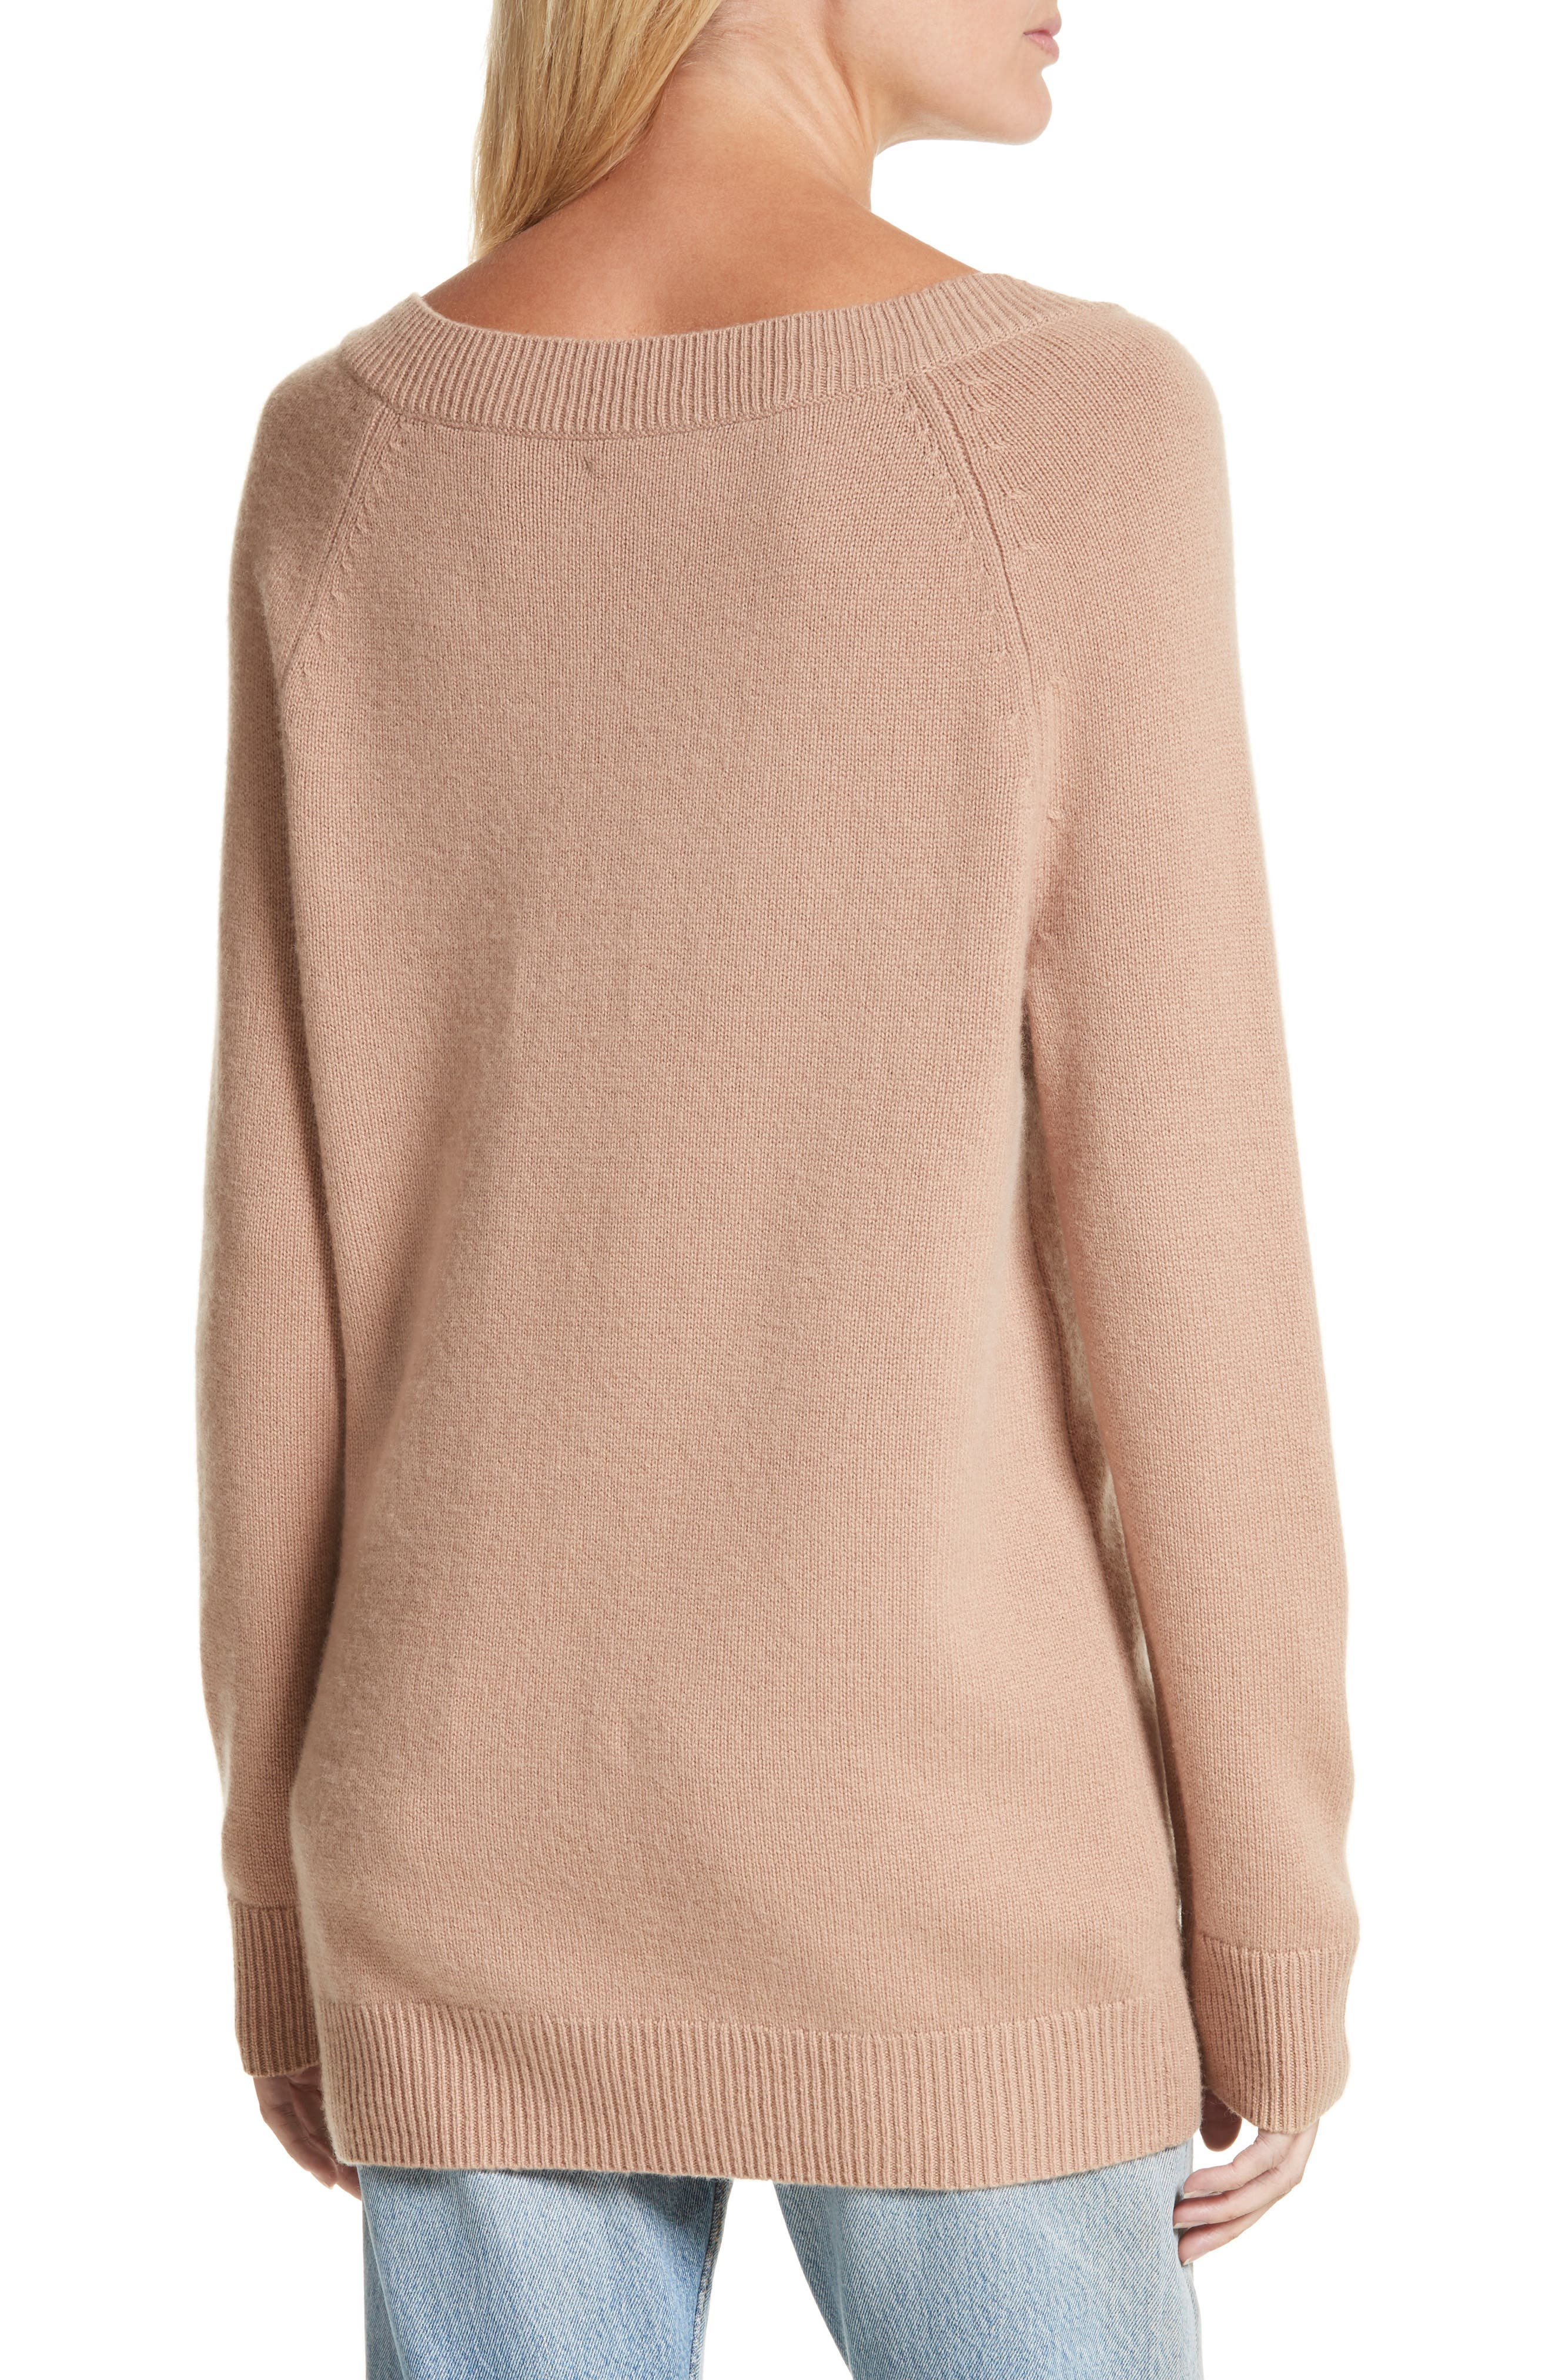 Cody Wool & Cashmere Boatneck Sweater,                             Alternate thumbnail 2, color,                             Camel